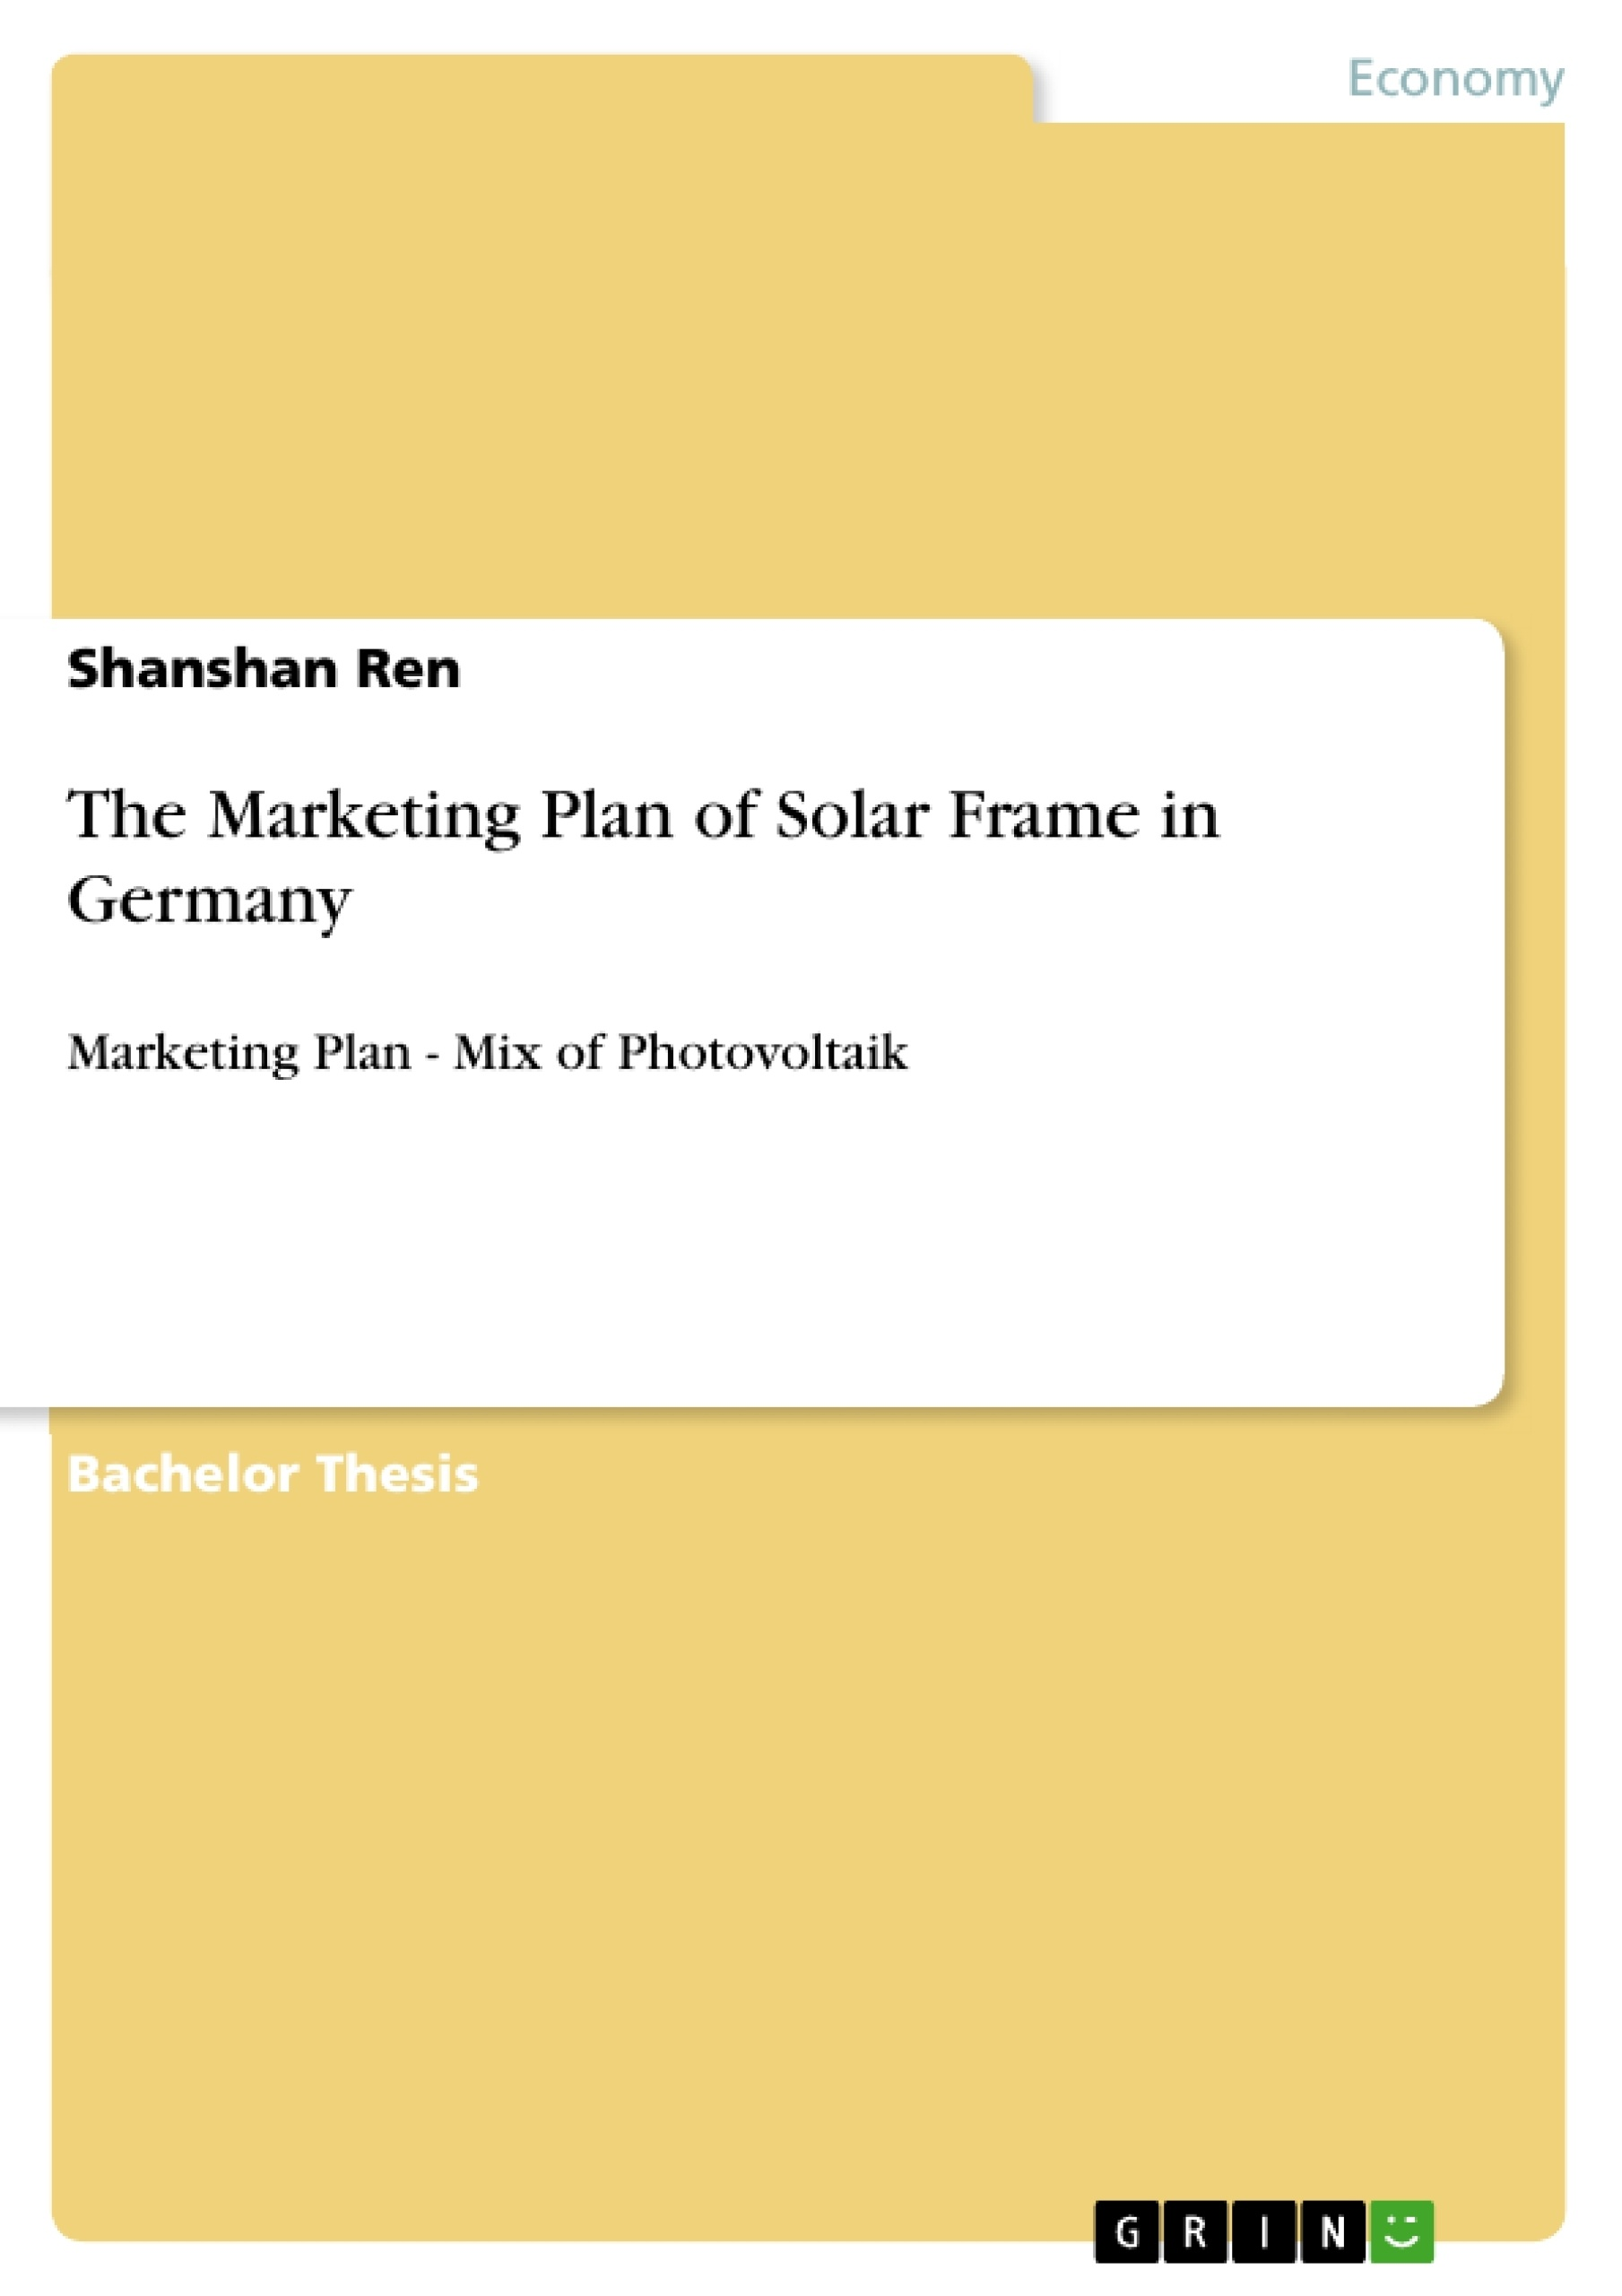 Title: The Marketing Plan of Solar Frame in Germany